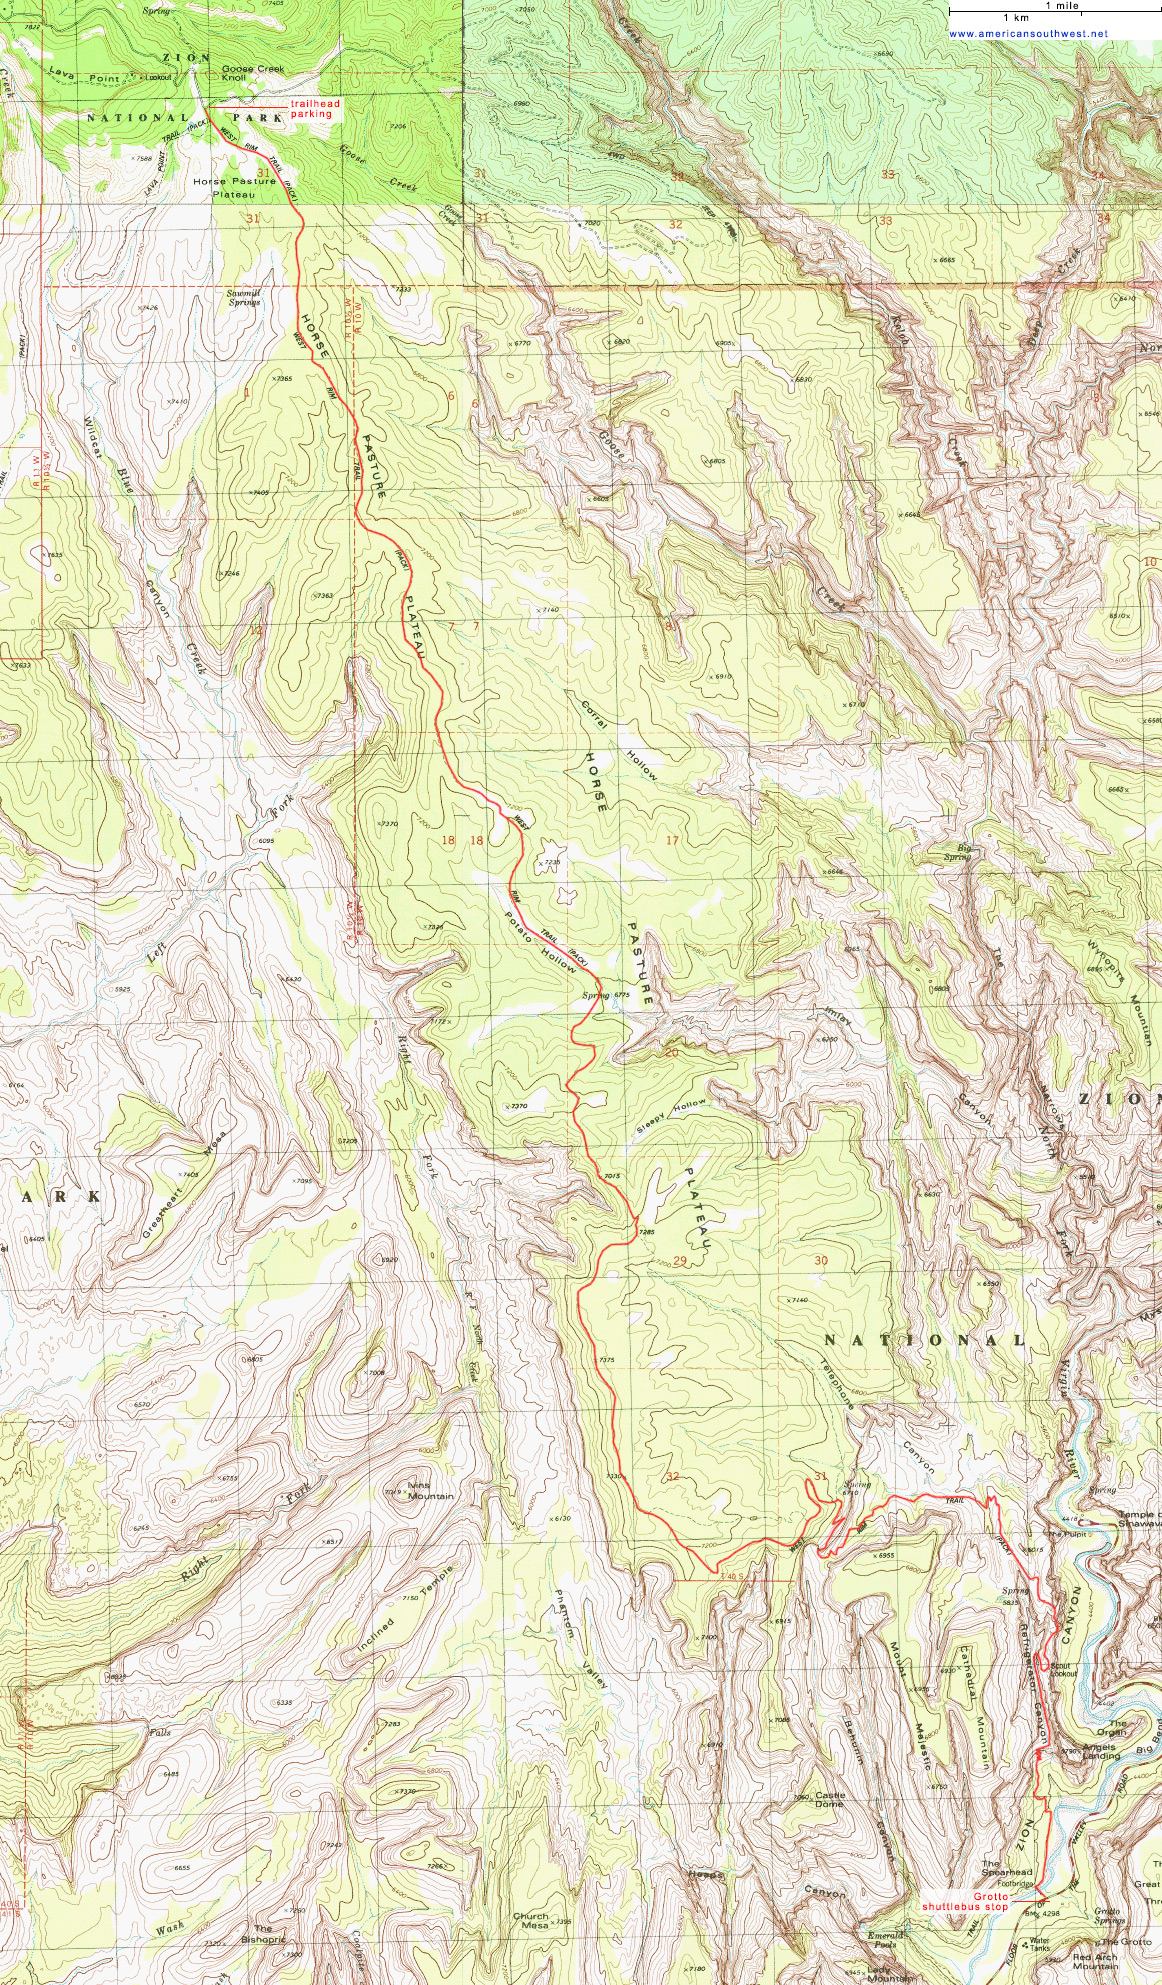 Topographic Map of the West Rim Trail, Zion National Park, Utah on mojave national preserve topo map, bryce and zion arches national park map, capitol reef topo map, zion national park on a usa map, glacier national park trail map, santa barbara topo map, four corners topo map, white river national forest topo map, albuquerque topo map, havasu falls topo map, dinosaur national monument topo map, mt zion national park map, kaibab plateau topo map, ashley national forest topo map, canyonlands topo map, mount st helens topo map, inyo national forest topo map, rocky mountain national park topographic map, sequoia national park topo map, red rock canyon topo map,